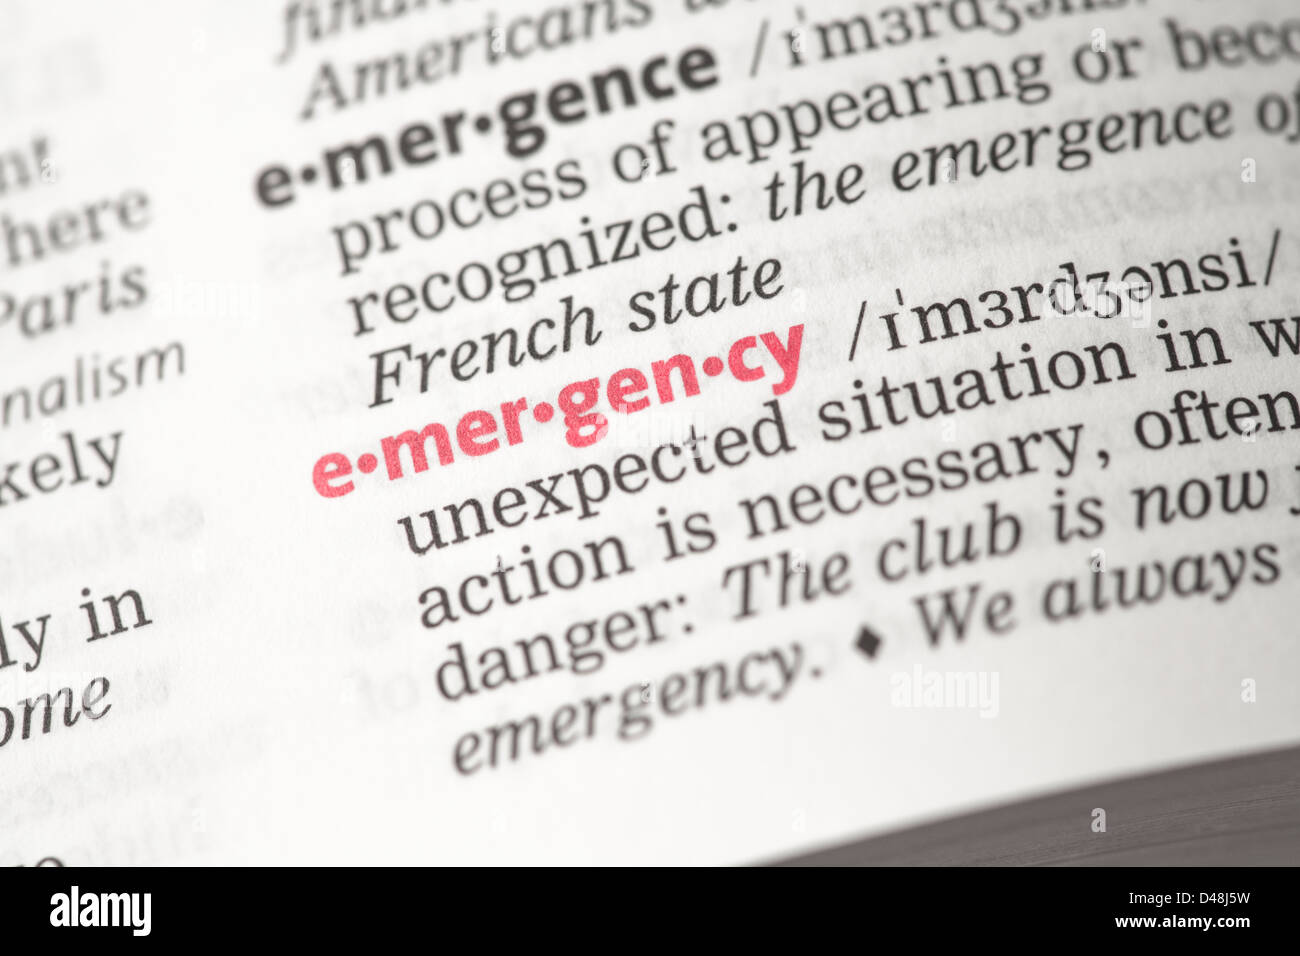 Emergency definition - Stock Image